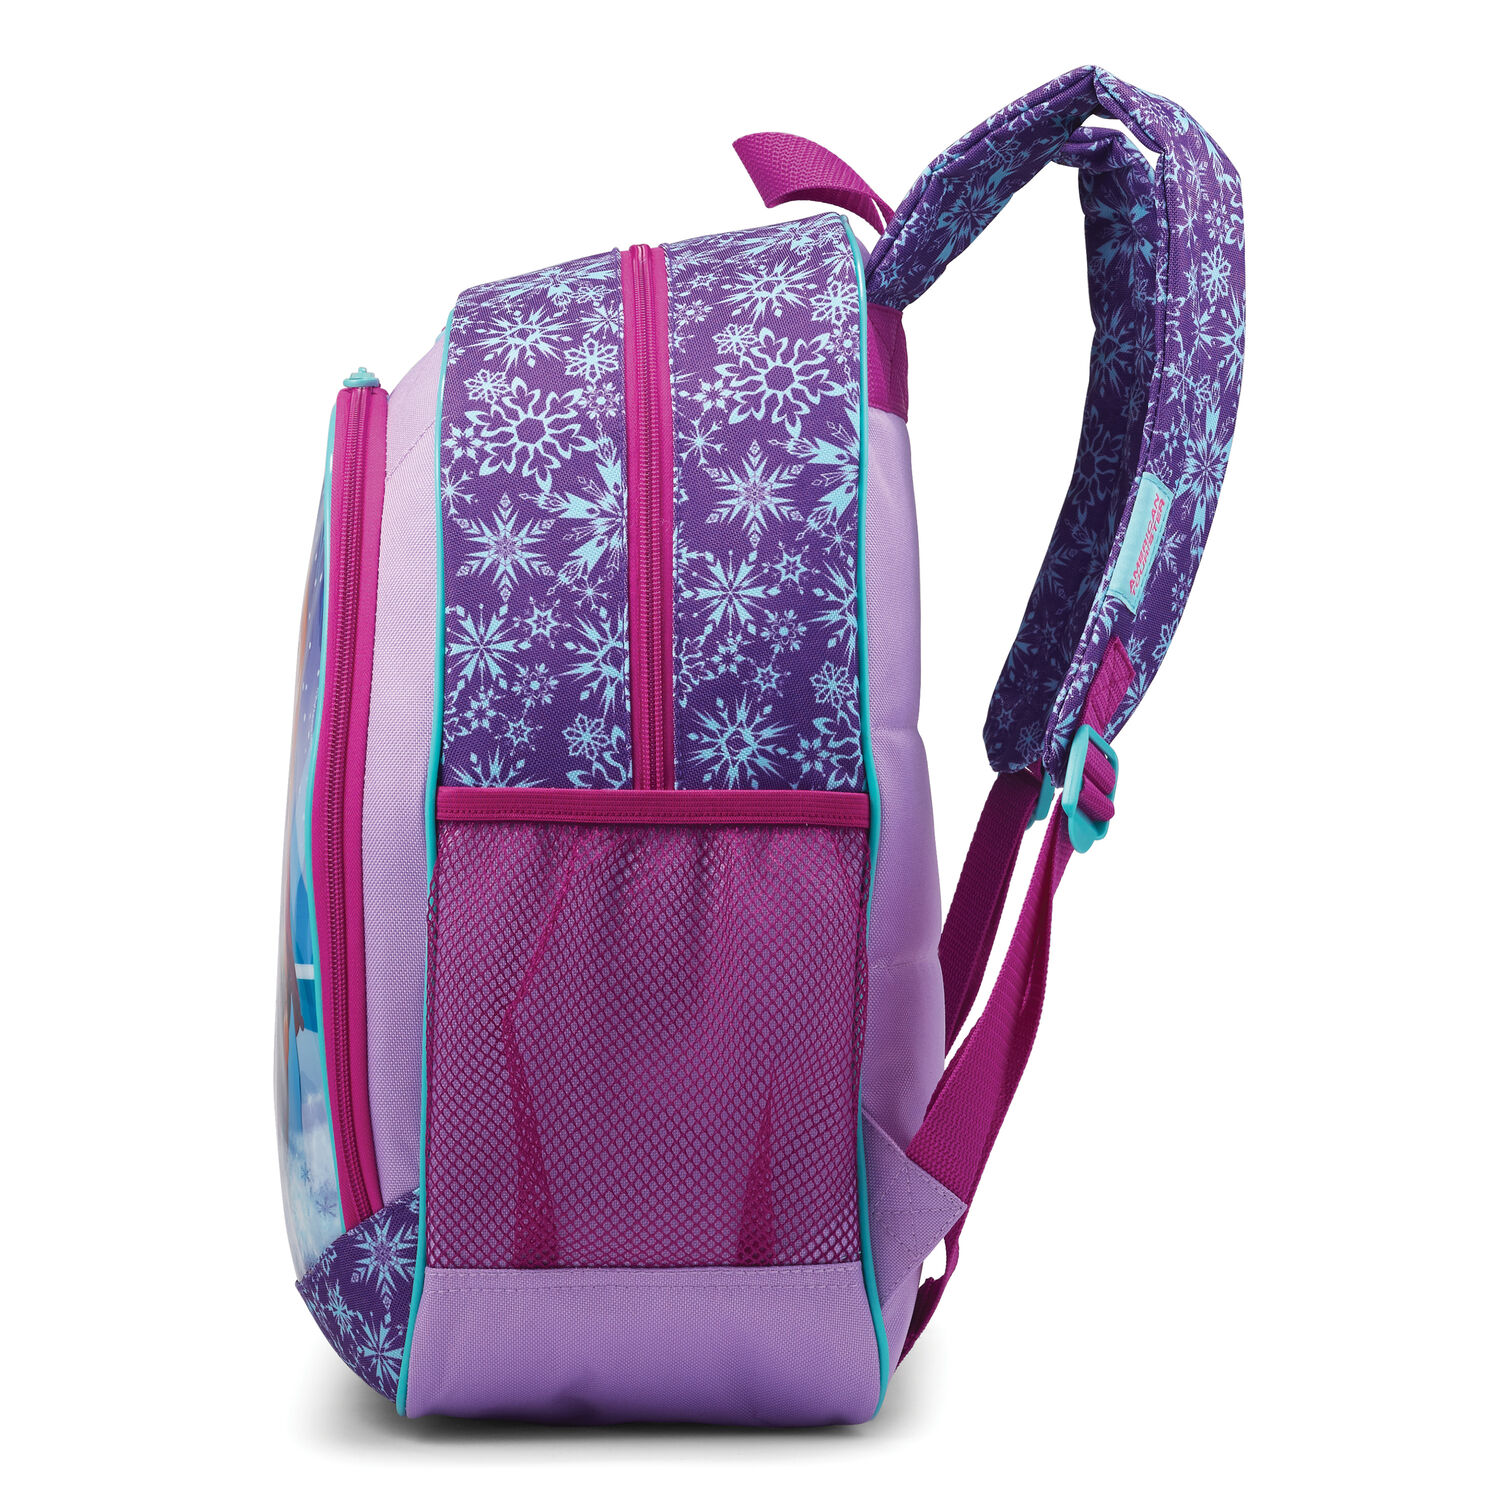 9e5b0ee4d1 American Tourister Disney Backpack in the color Frozen.